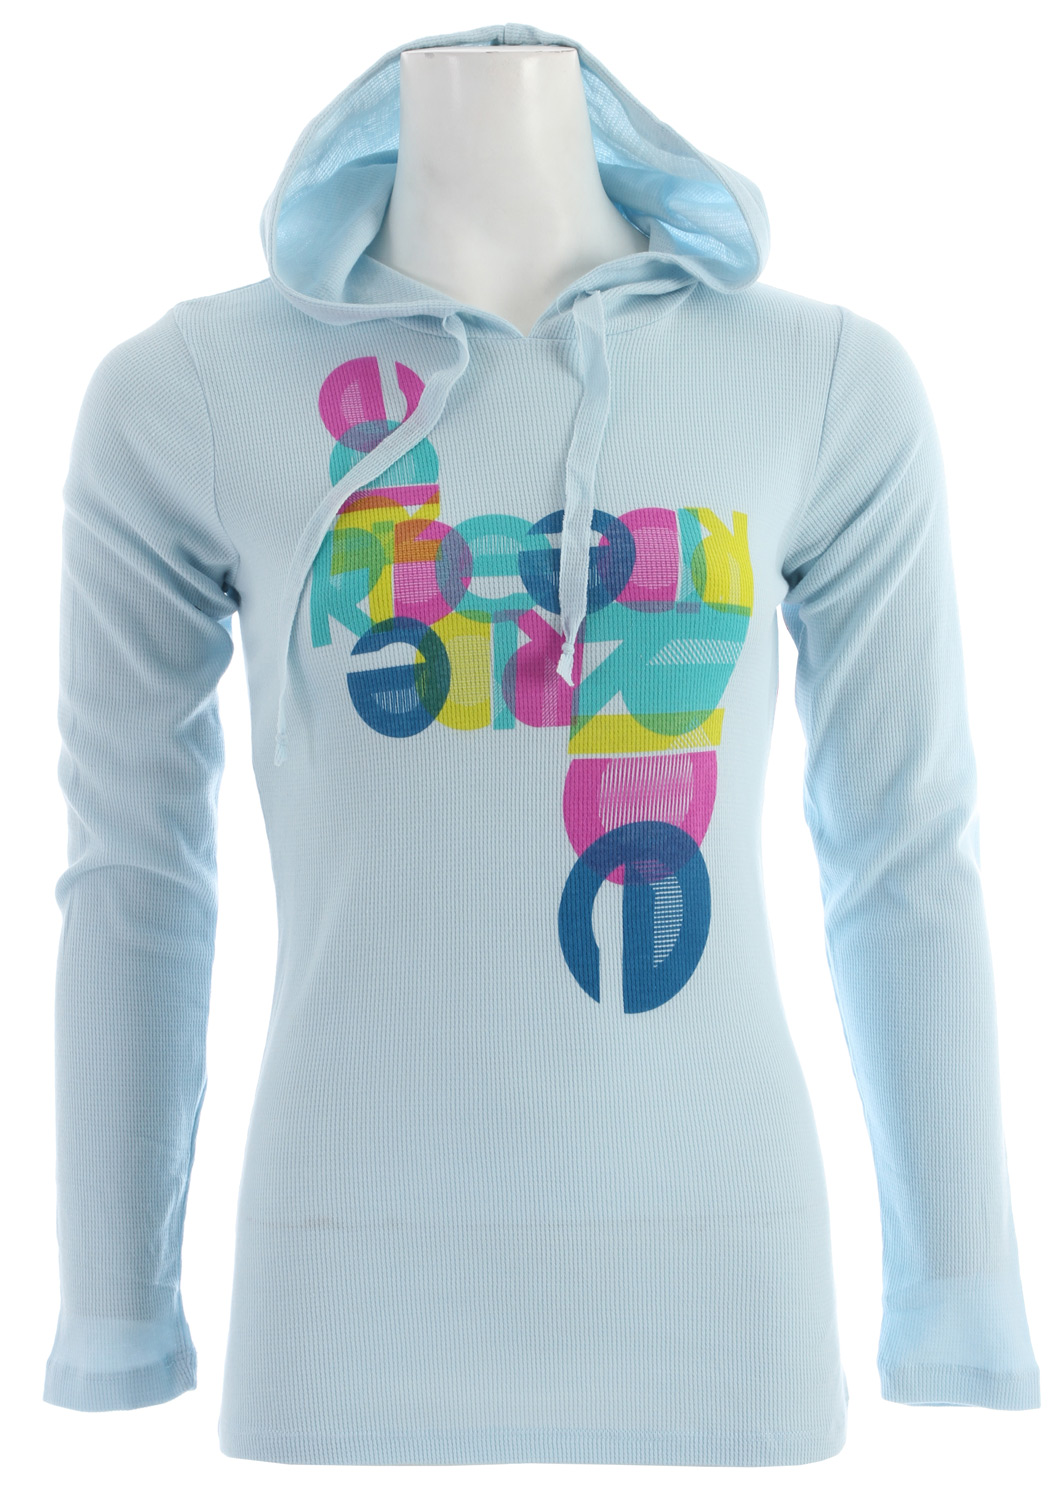 Need a little warmth? Add the Ride women's Glam Thermal on under a hoodie or wear it as it is and you will be cozy.Key Features of the Ride Glam Thermal: Long Sleeve Hooded Thermal Silkscreen 100% Cotton - $24.95